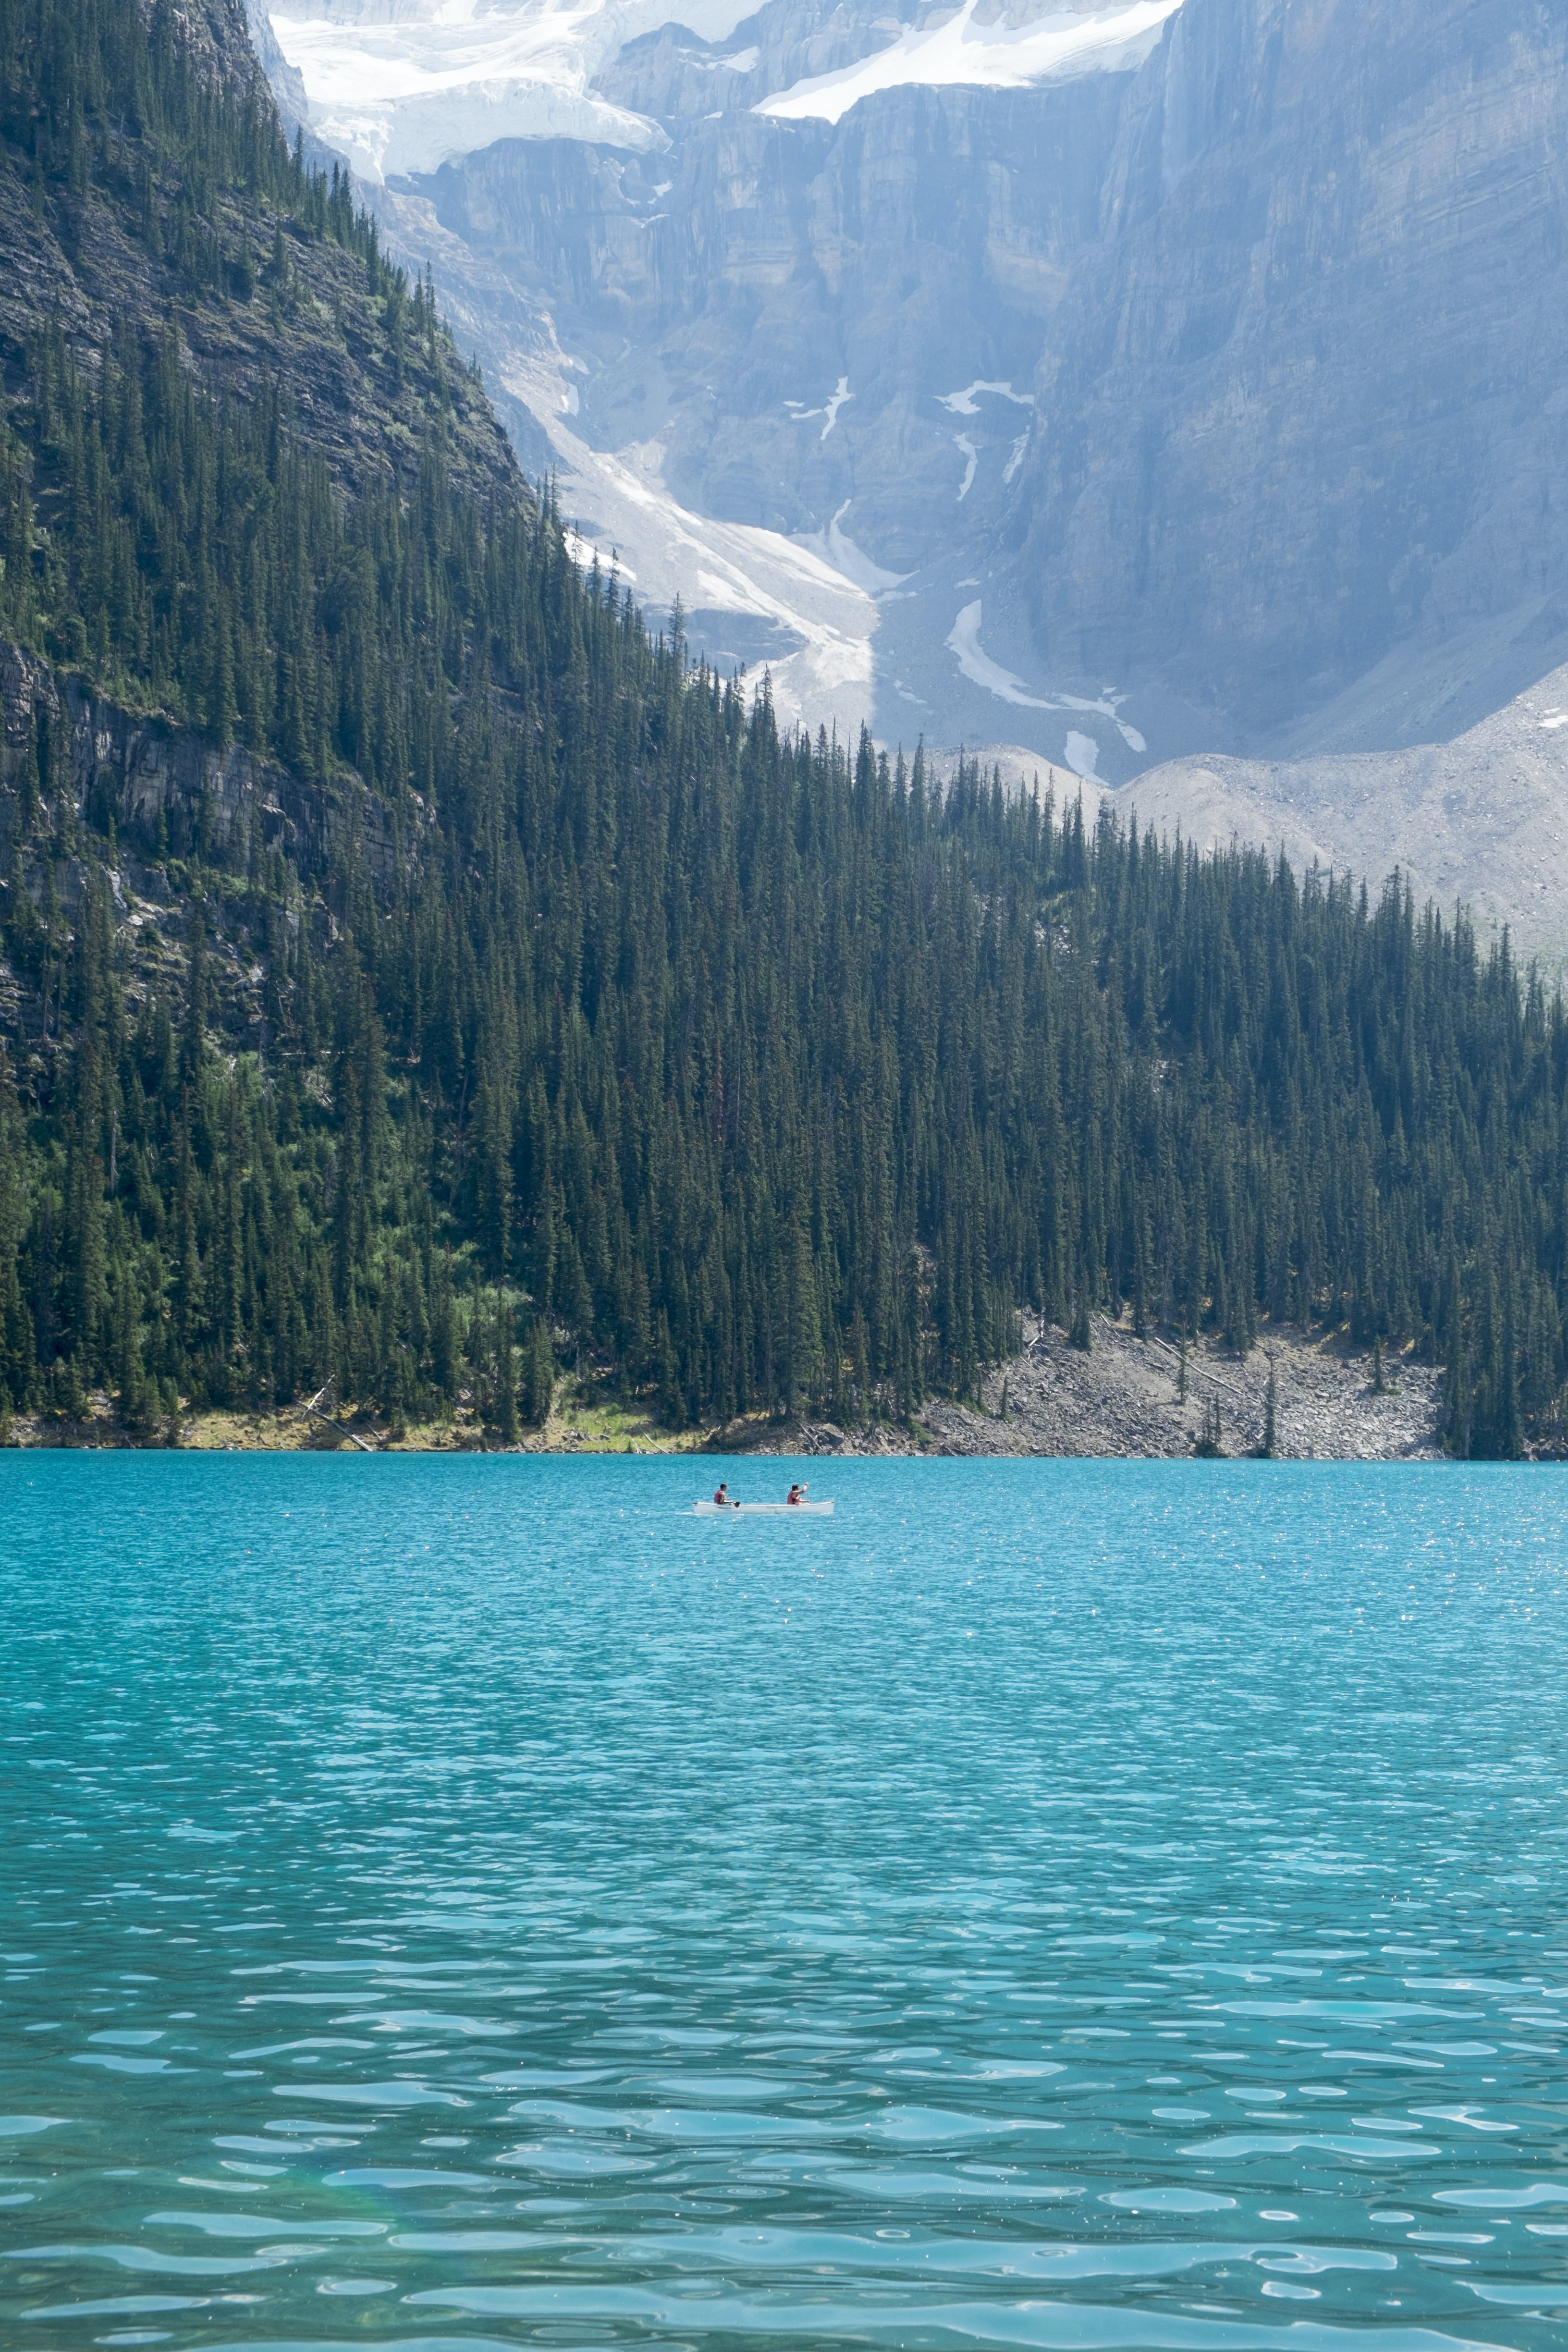 Broad landscape capturing the forest around the lake louise with people in a canoe